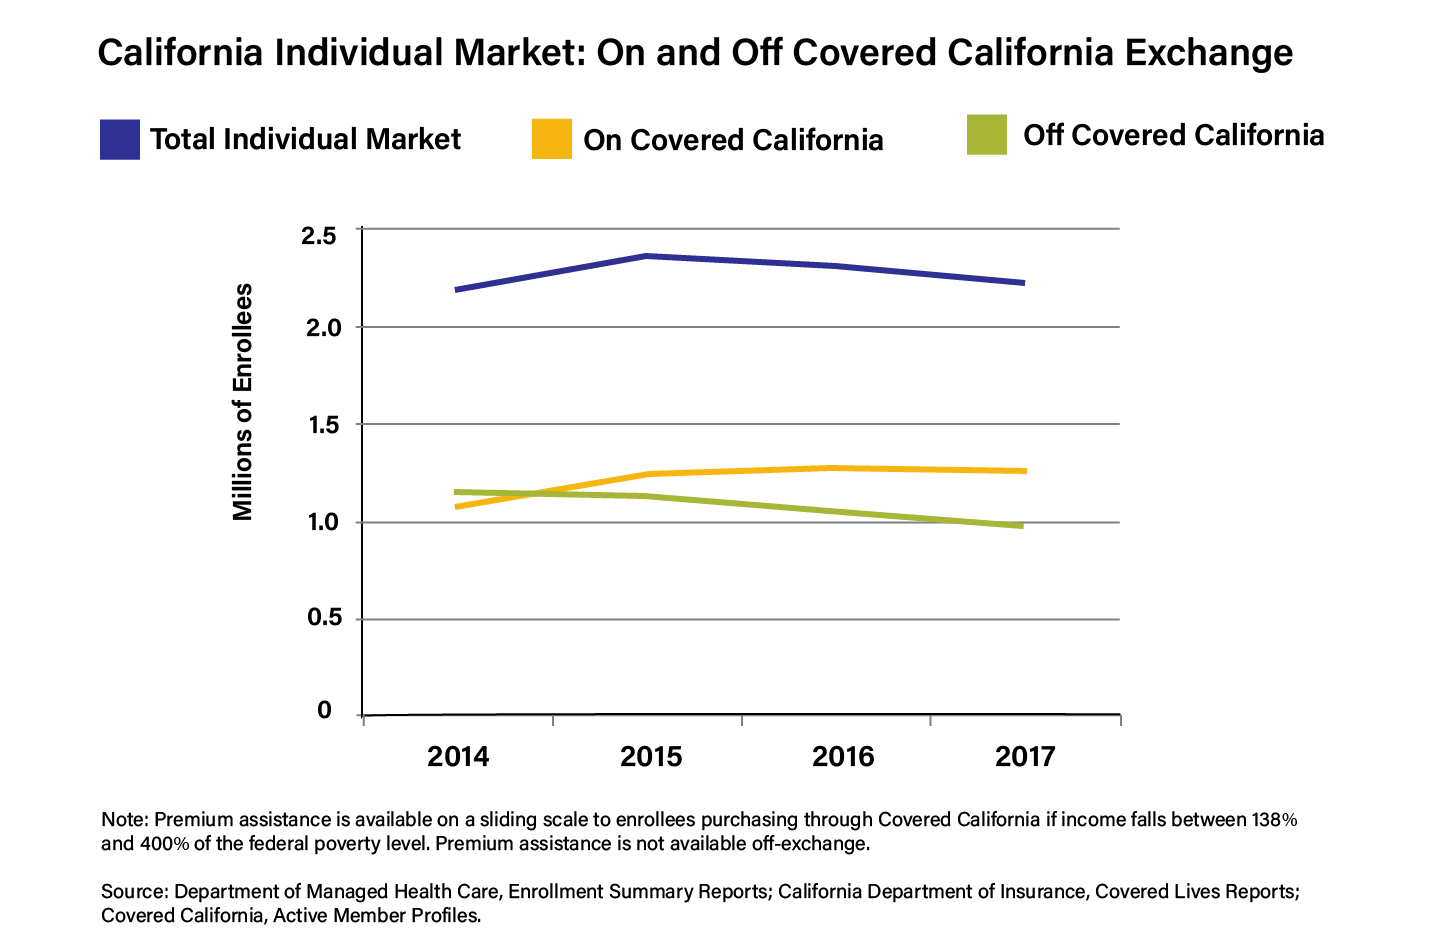 line chart showing enrollment in different individual markets in California, from 2014 to 2017